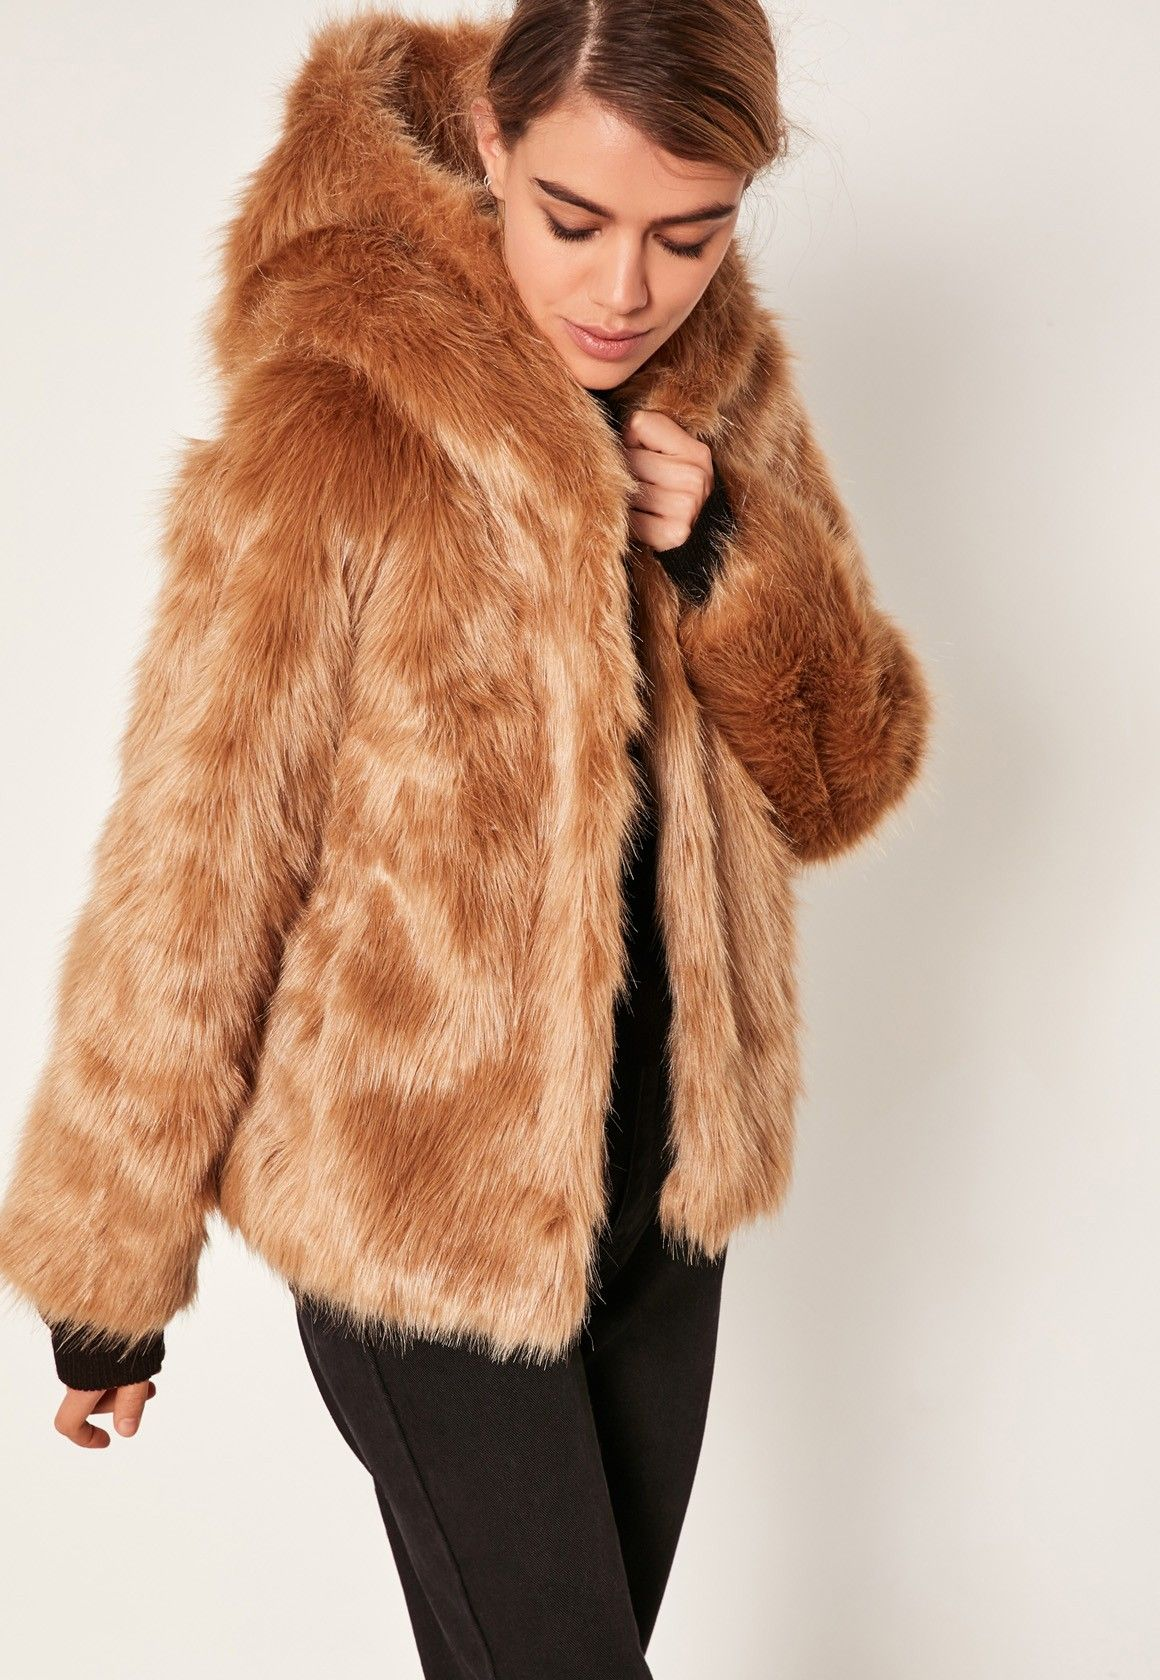 38b3def549af6d We love a faux fur coat here at Missguided and this caramel nude shade with  hood is top of our wish list.